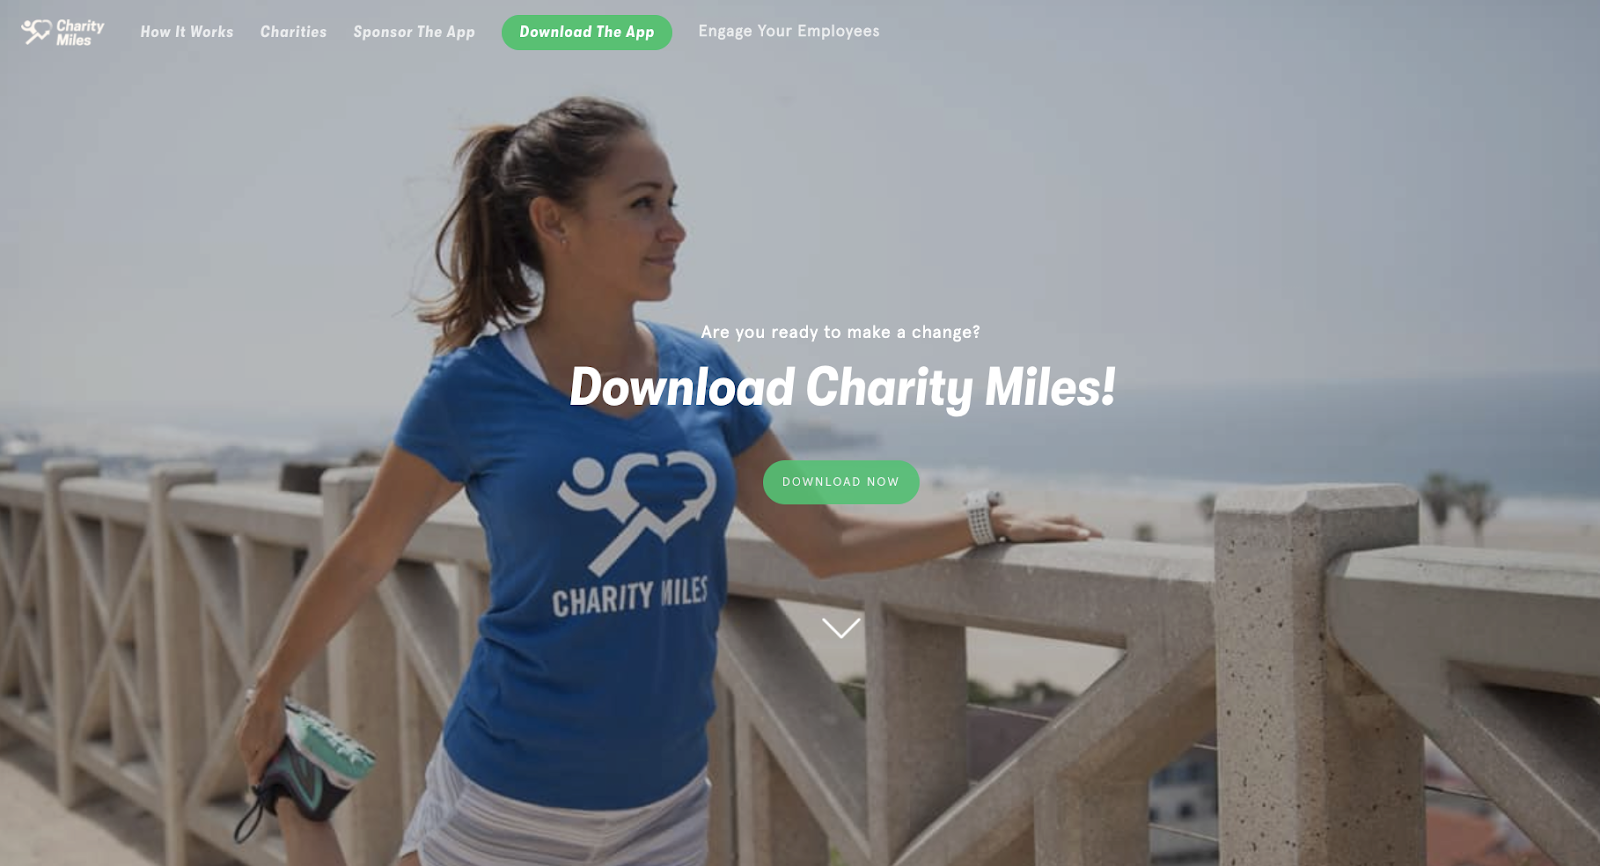 Charity Miles is an app that donates to charities on behalf of users who record the miles they run, walk, & bike on the app.